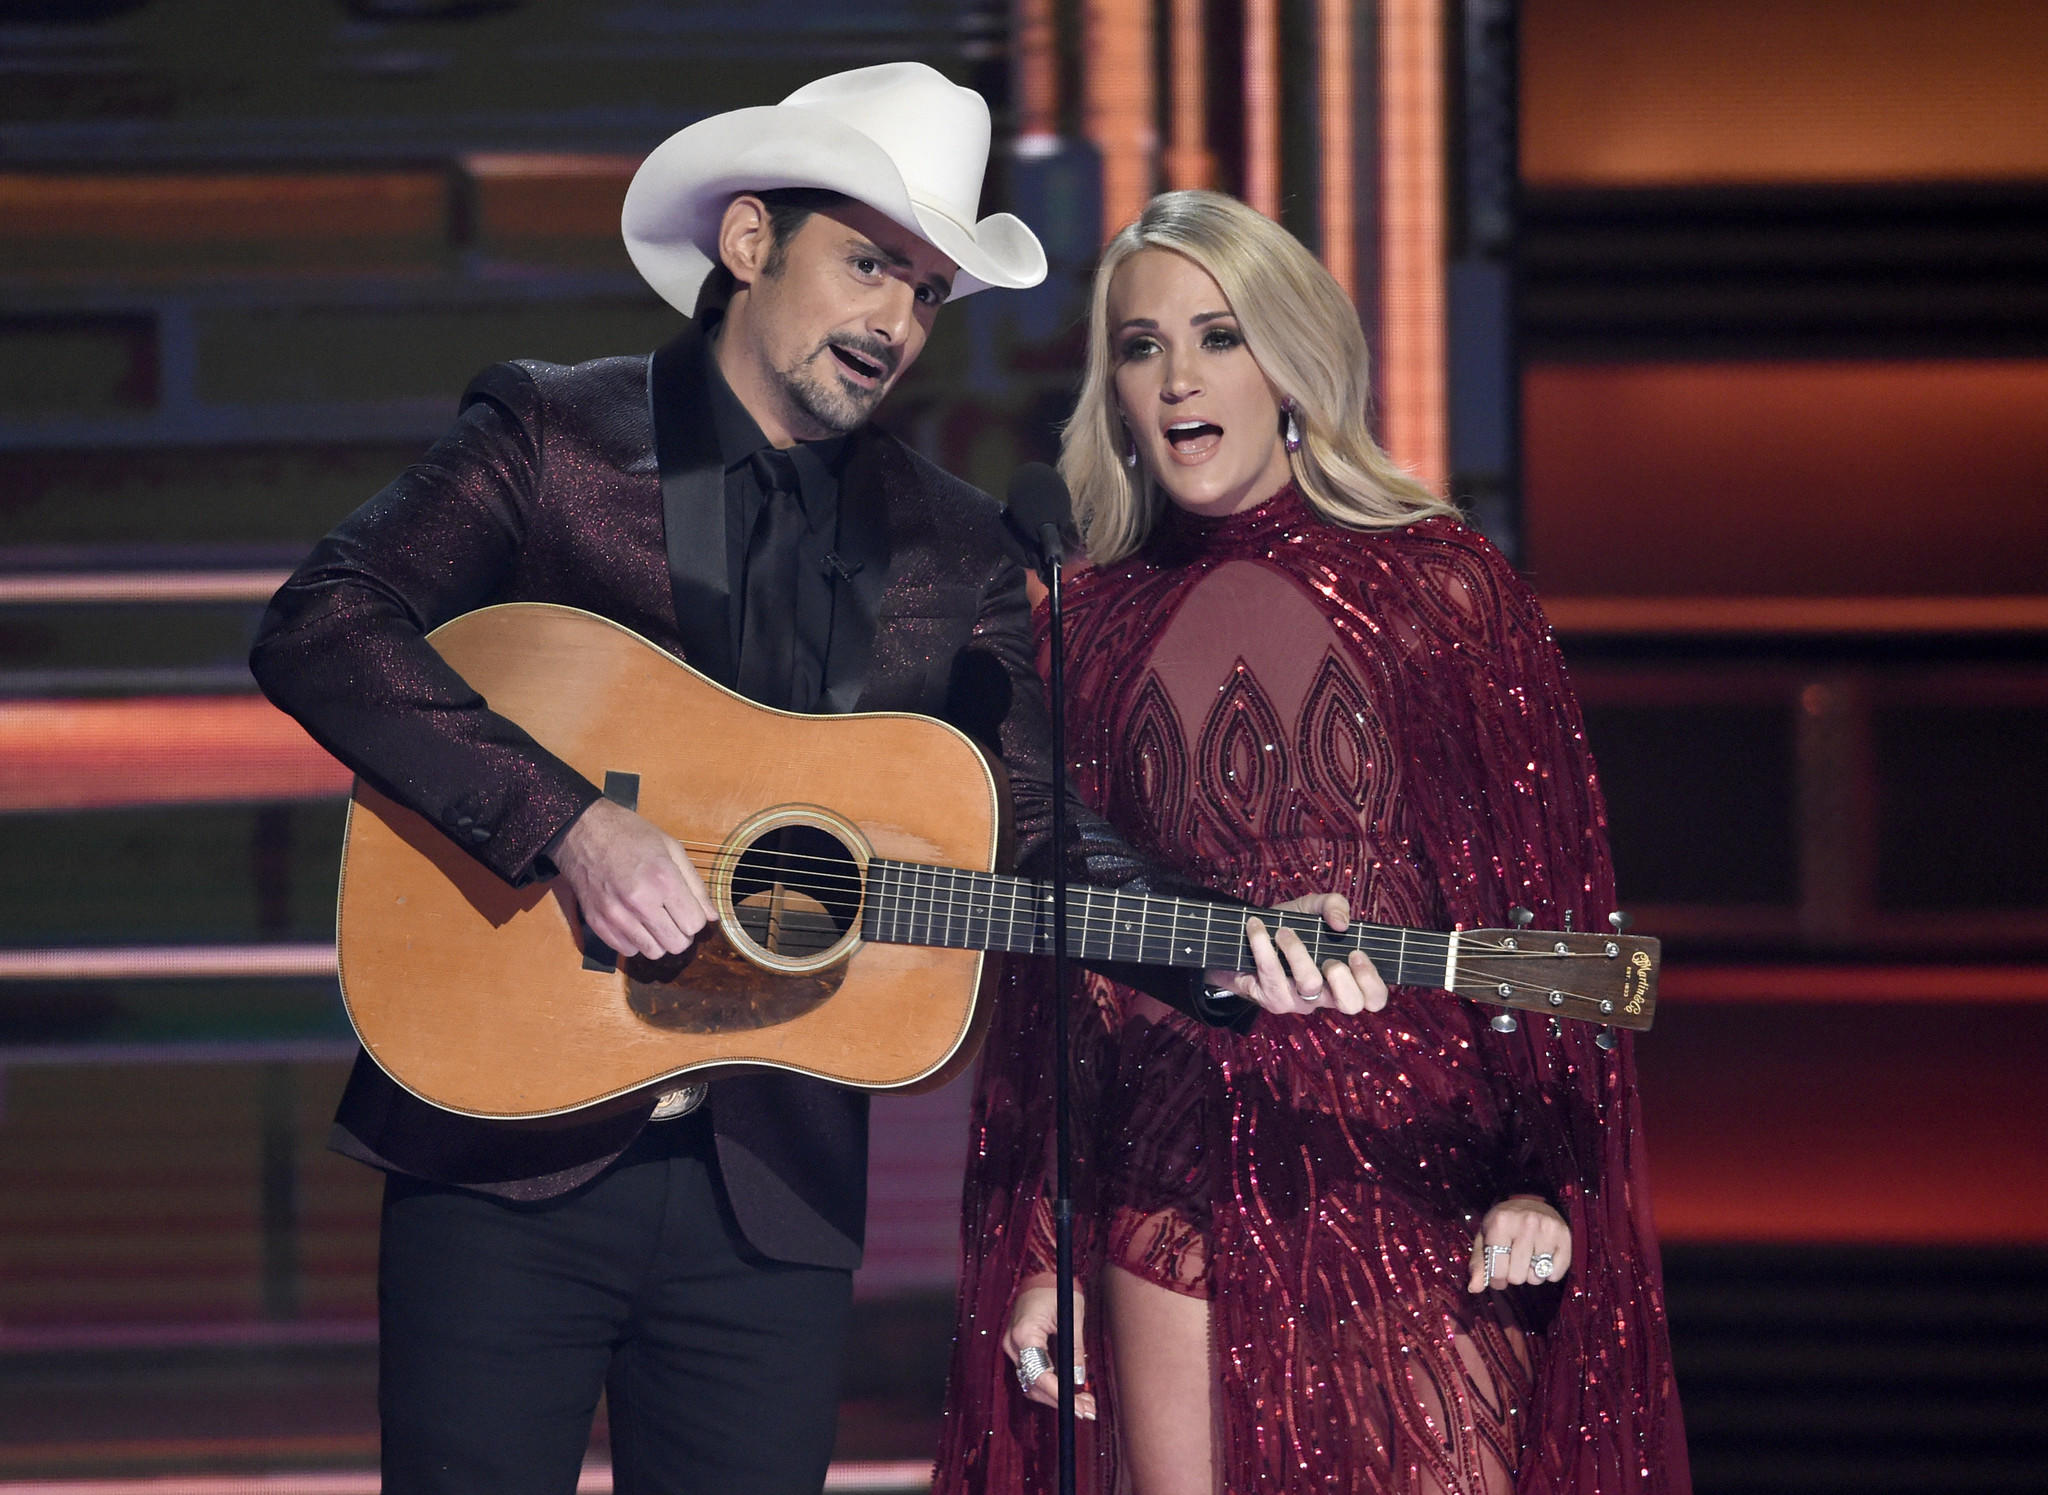 Brad Paisley and Carrie Underwood perform at the CMA Awards in Nashville on Wednesday. (Chris Pizzello / Invision/Associated Press)